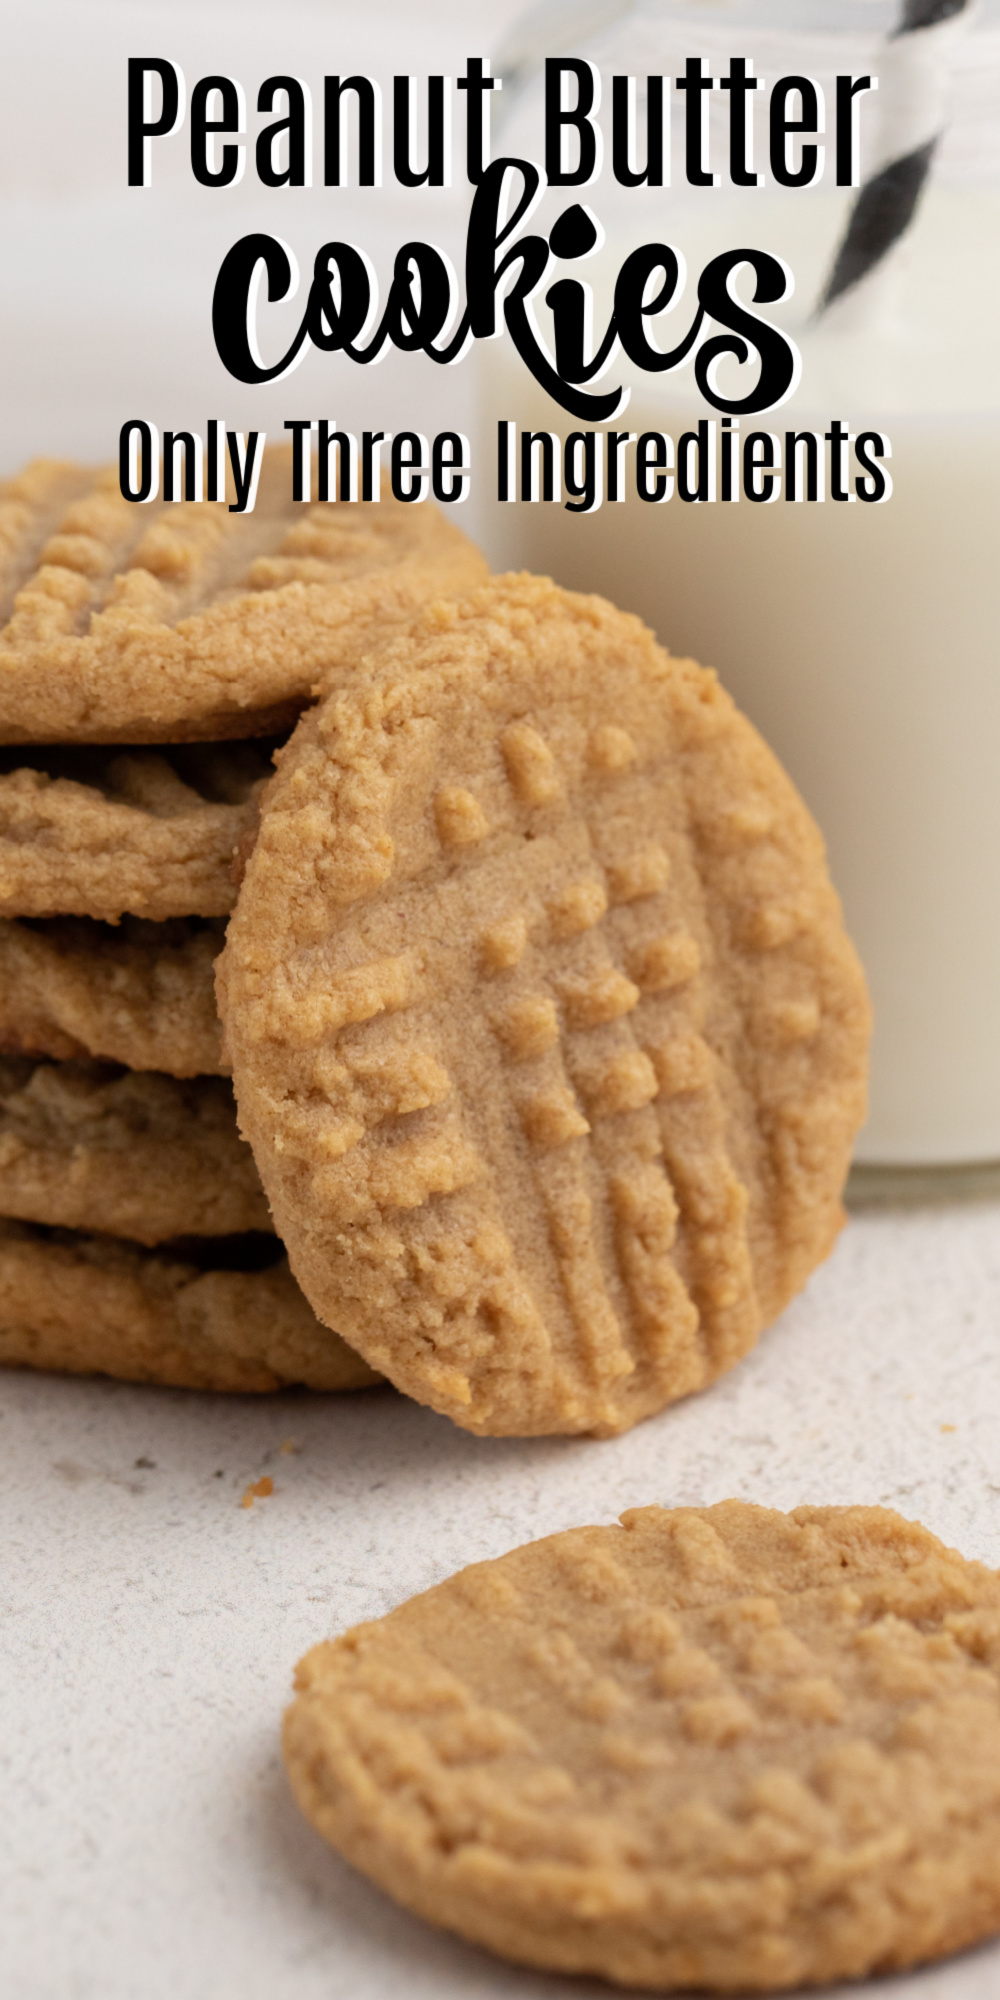 Three Ingredient Peanut Butter Cookies are some of my favorite easy cookies to make. You only need a few ingredients and less than 10 minutes before you are snacking on this delicious and easy treat. An easy family favorite and easy dessert recipe!